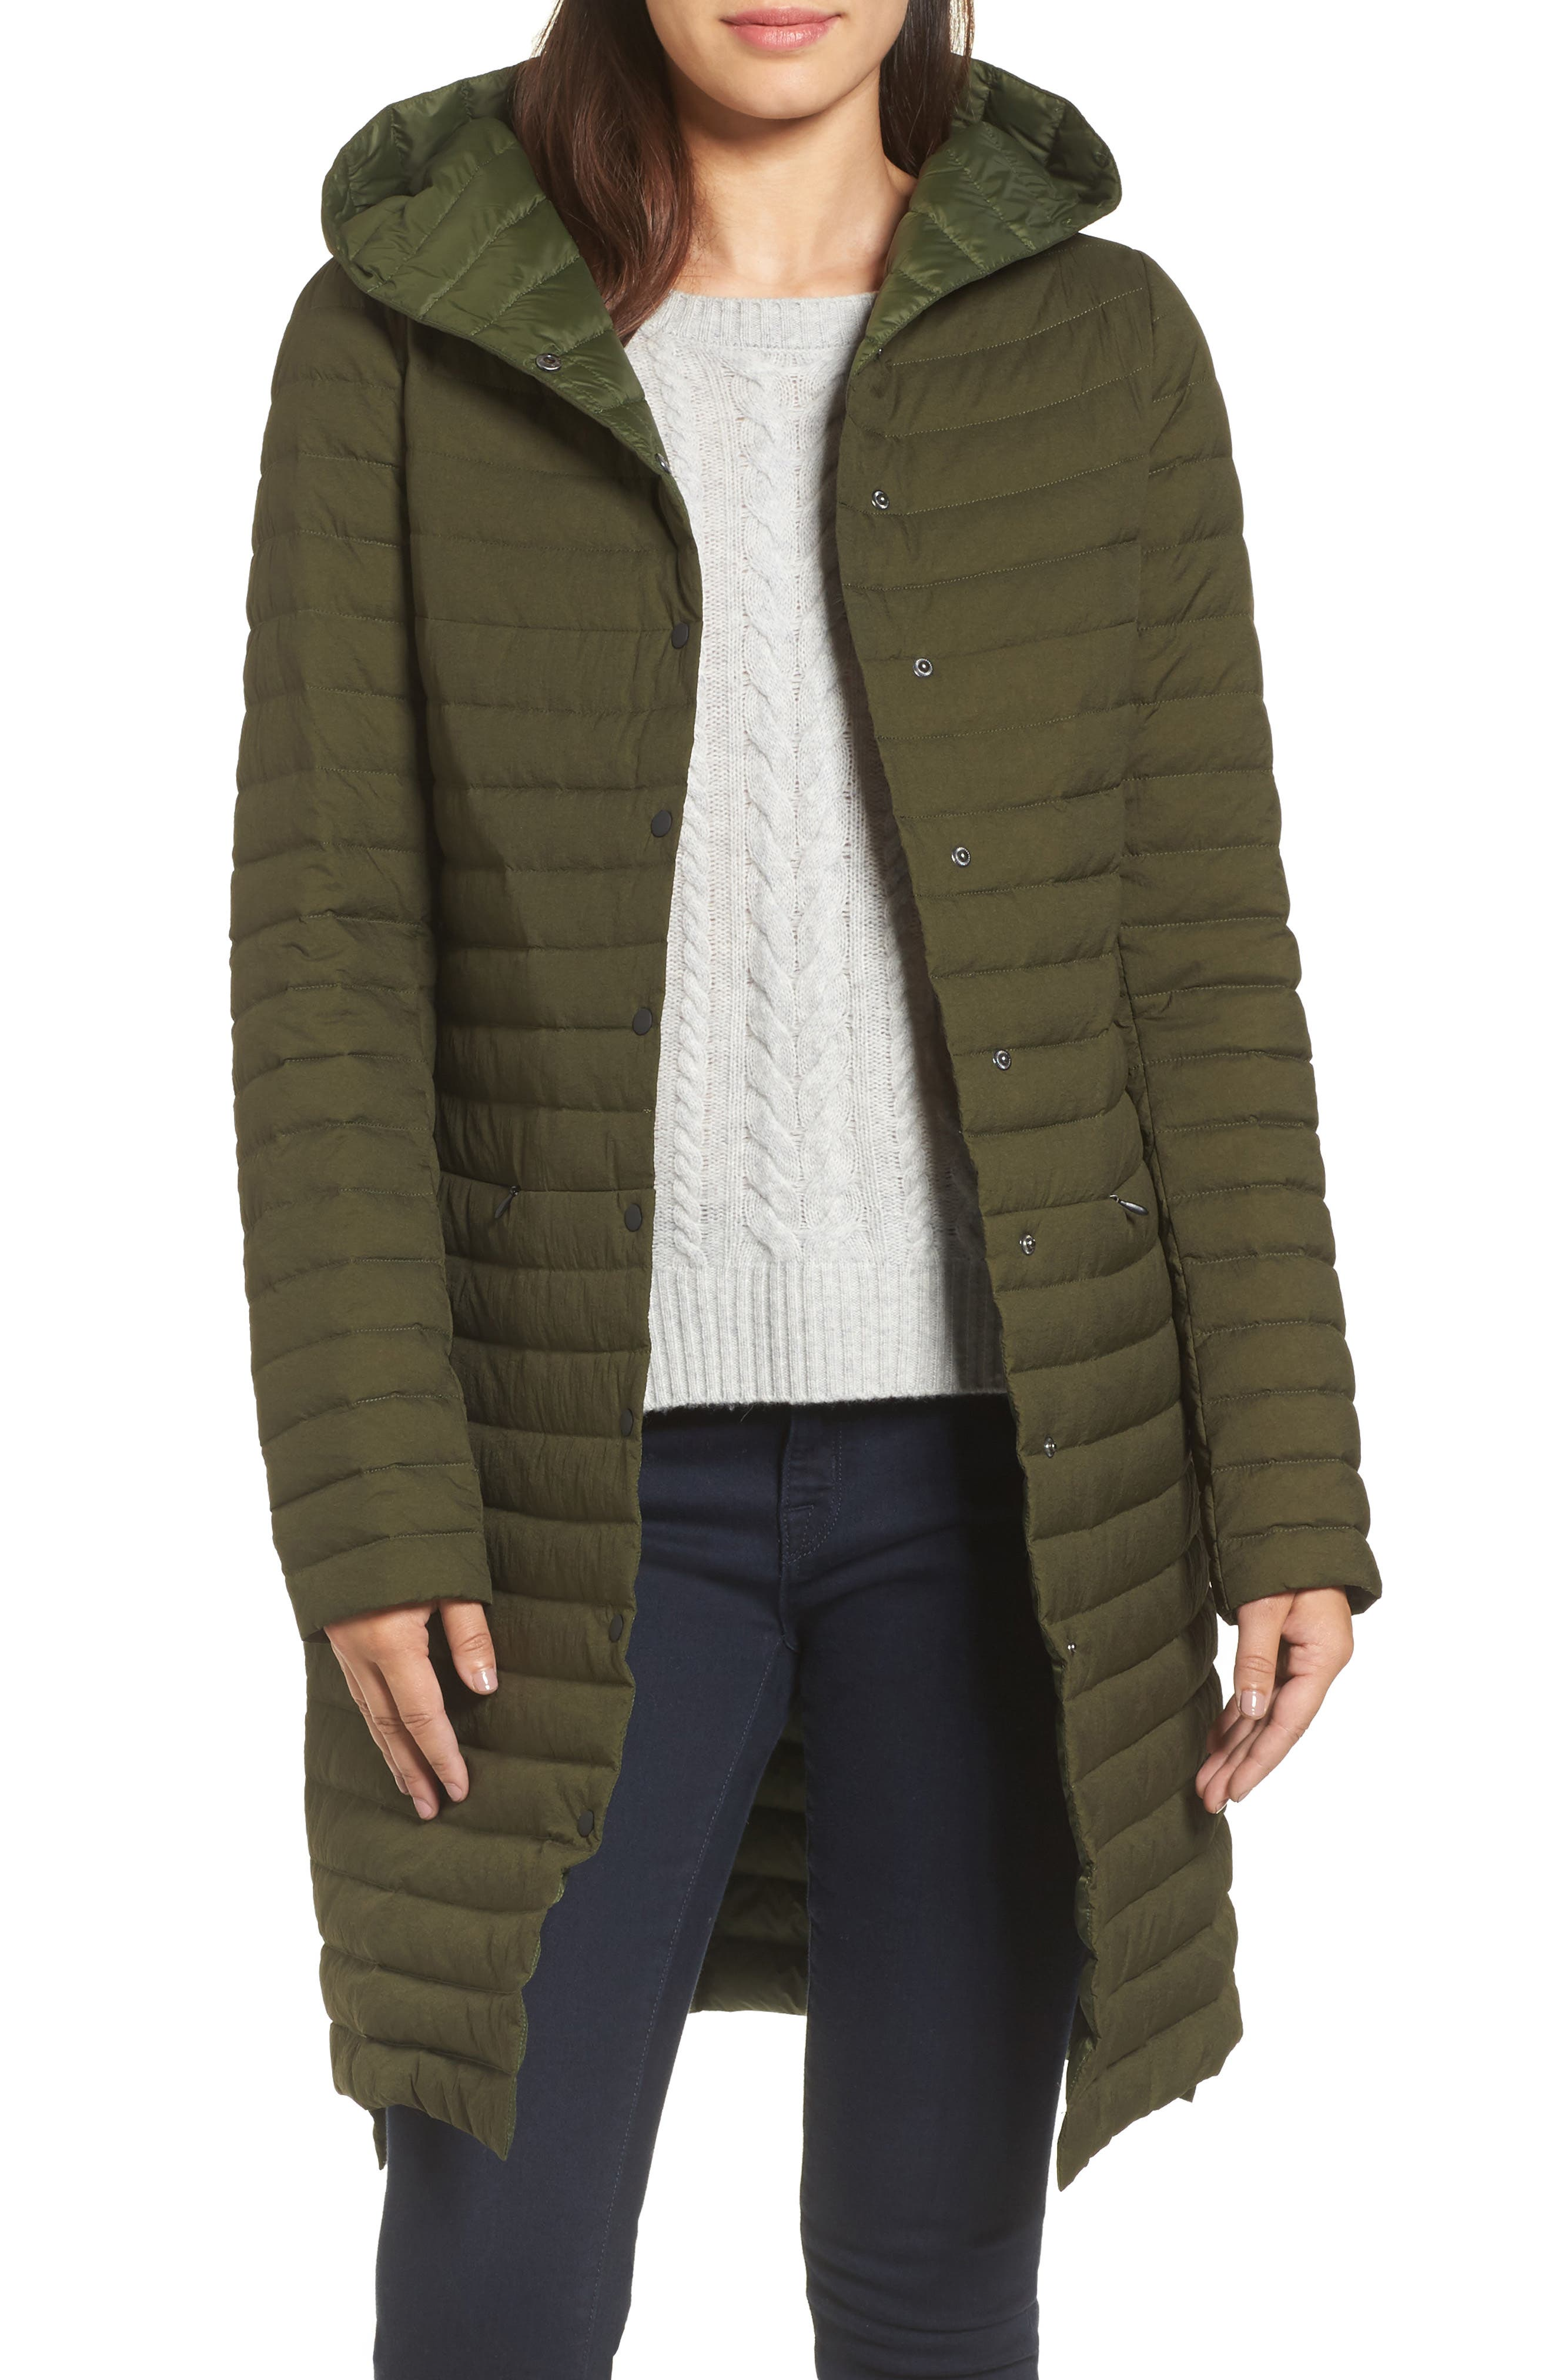 Trina Turk Edith Hooded Long Coat